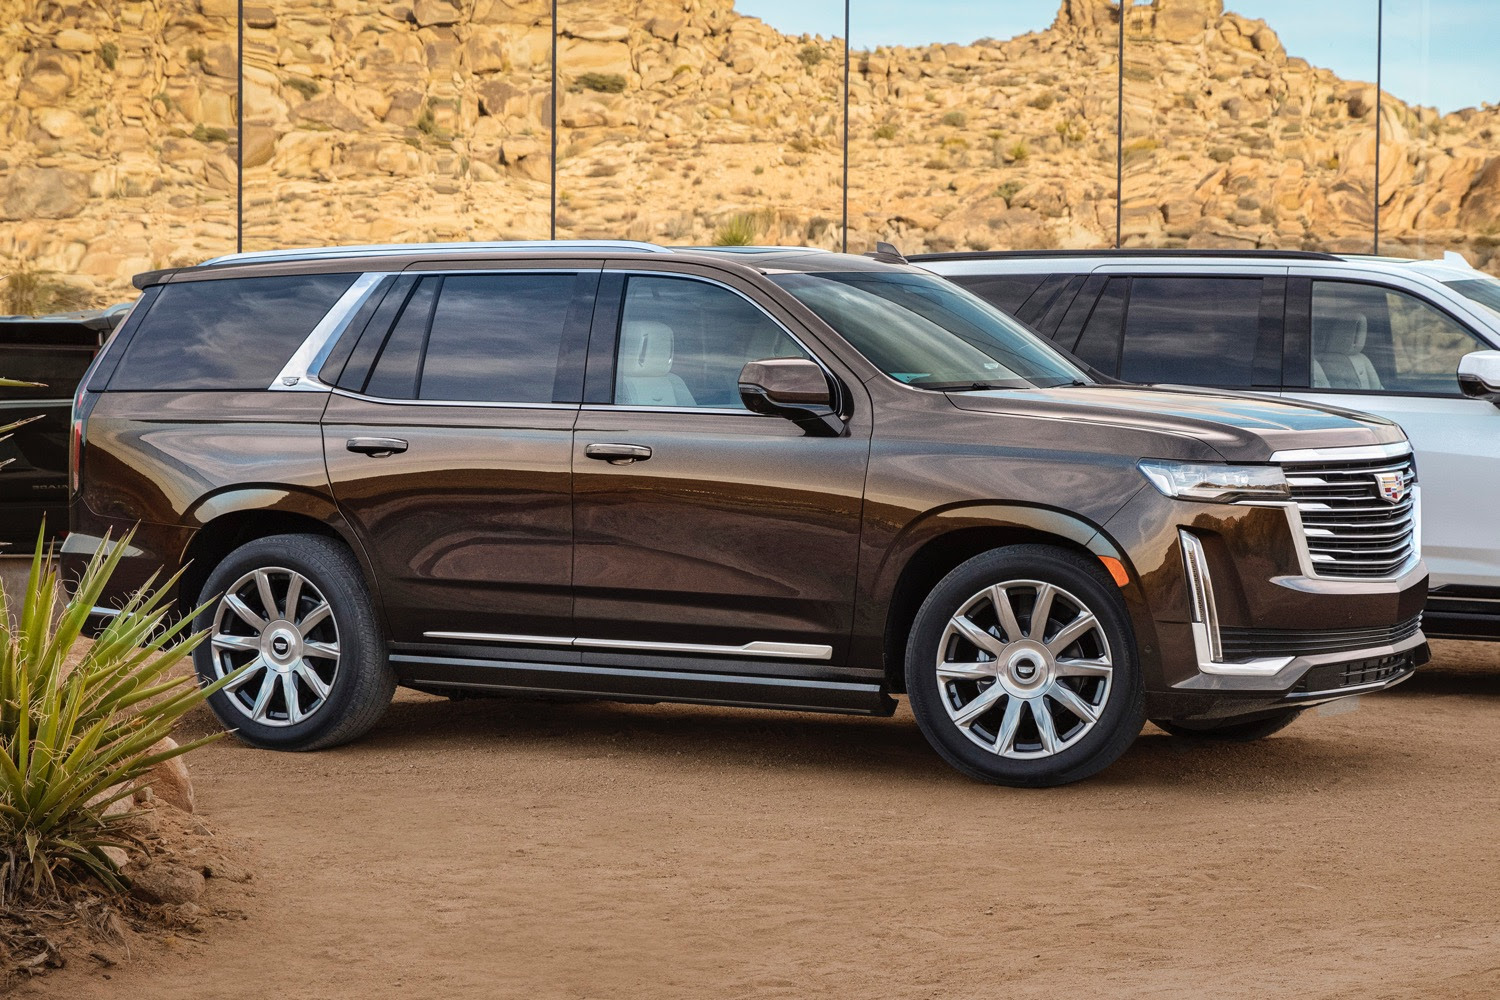 2021 cadillac escalade onyx package features gray cadillac